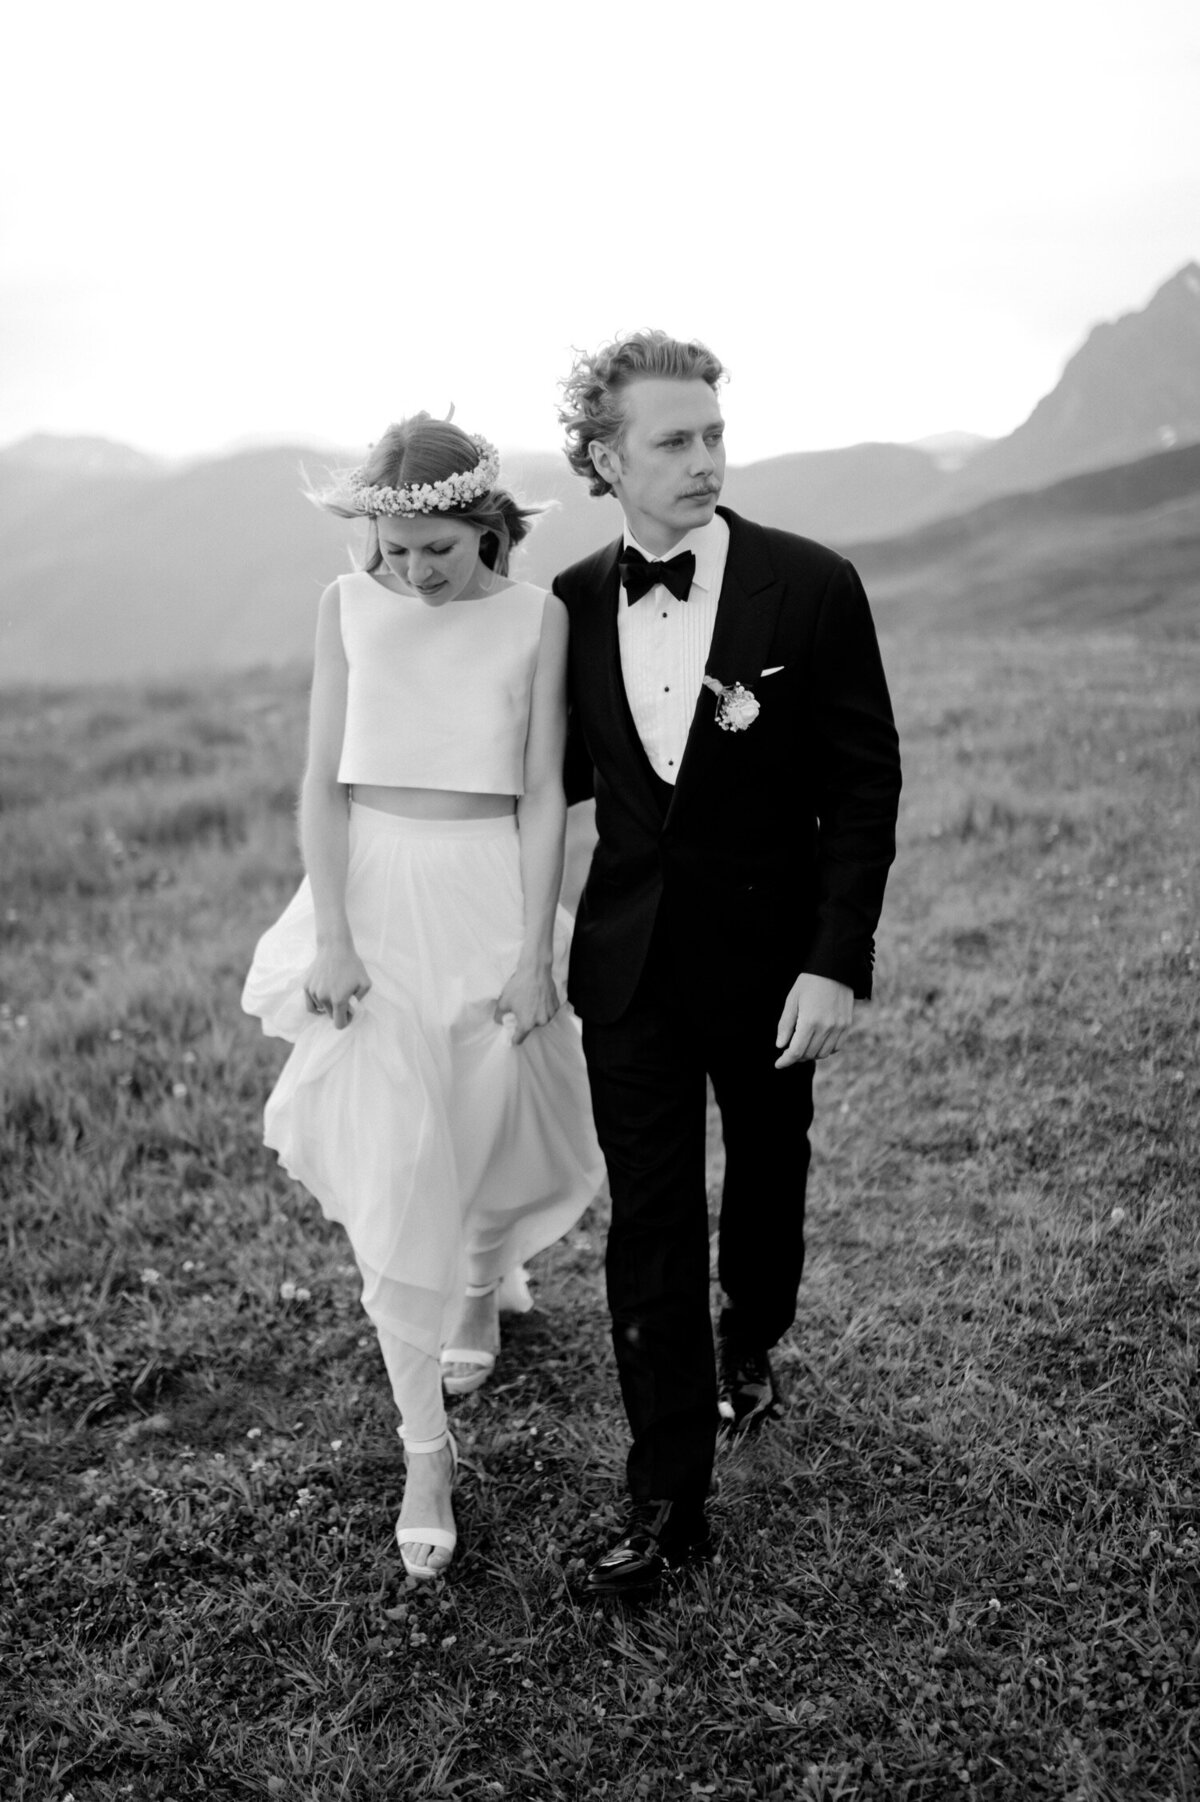 131_Austria_Luxury_Wedding_Photographer (131 von 216)_Flora and Grace is a luxury wedding photographer for stylish and elegant weddings.